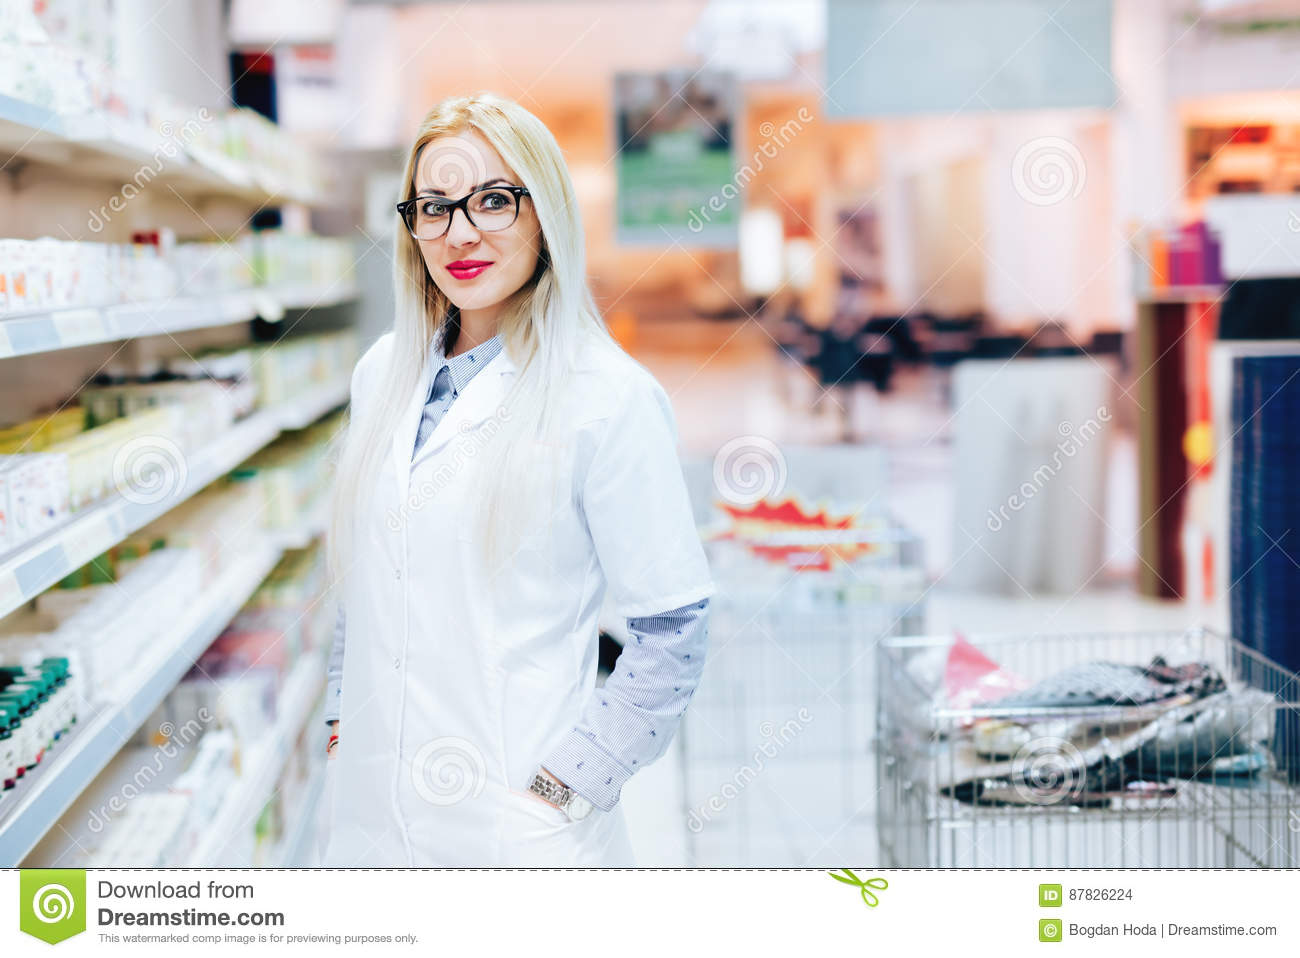 Professional pharmacist standing in pharmacy drugstore and smiling. Details of pharmaceutical industry